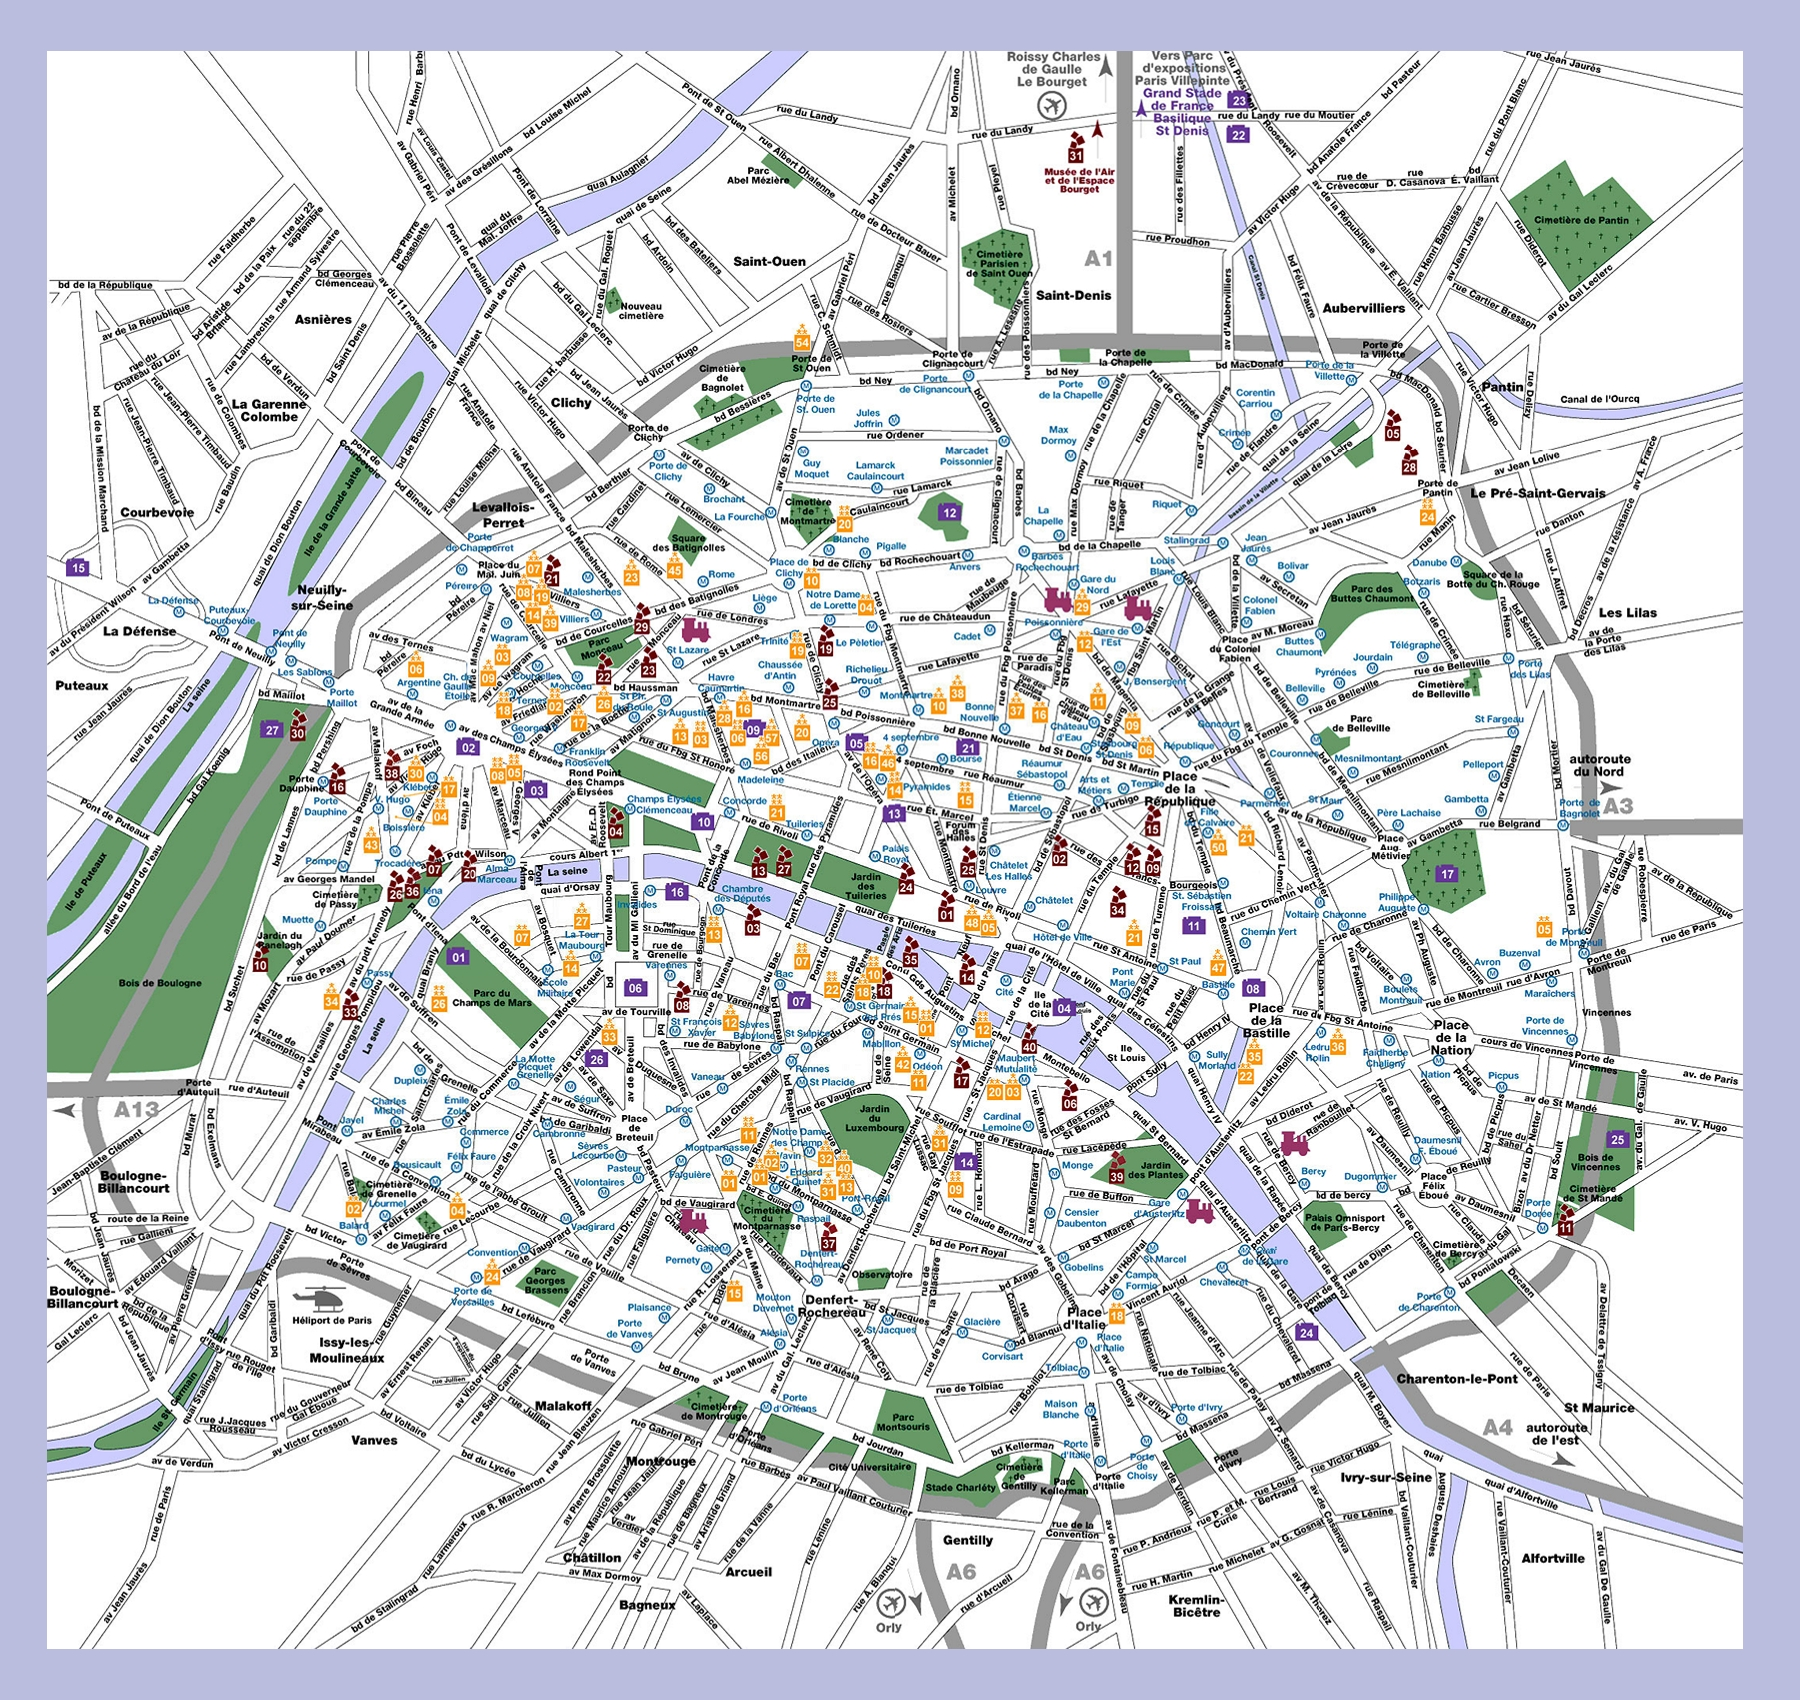 Map Of Paris In English Paris France Tourist Attractions Map – Paris Tourist Map English